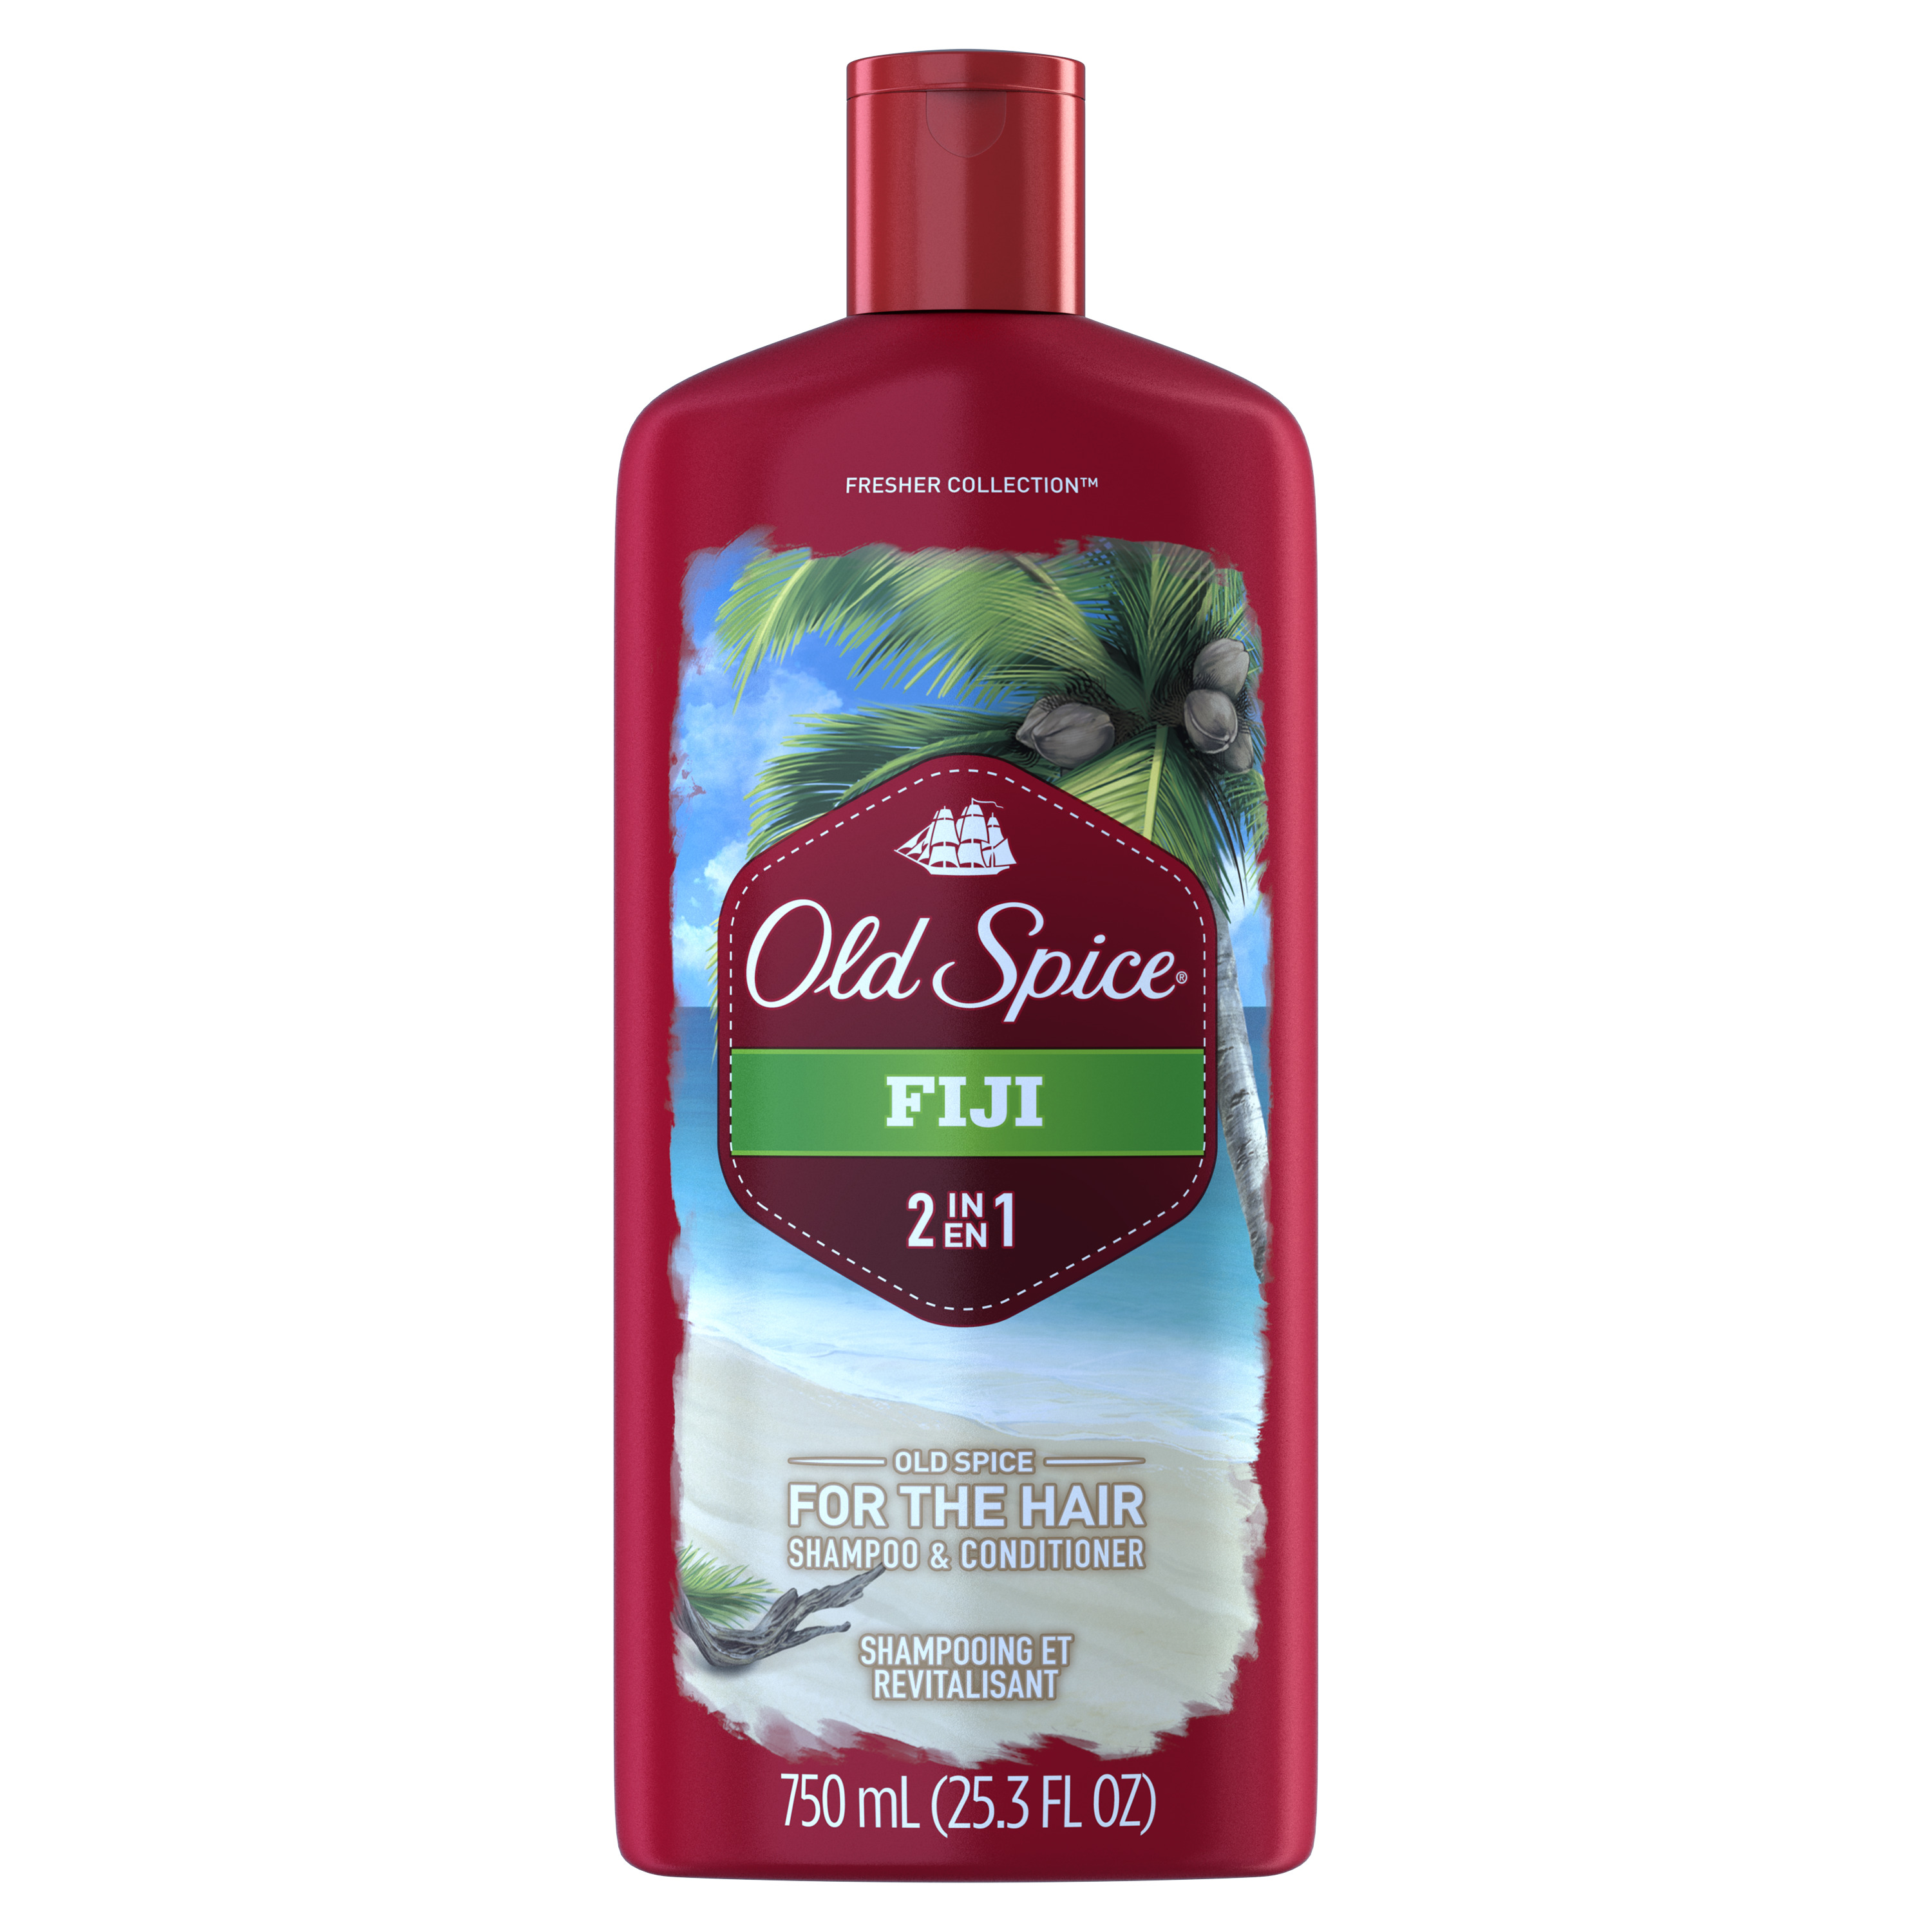 Old Spice Fiji 2-in-1 Shampoo and Conditioner 25.3 Fl Oz